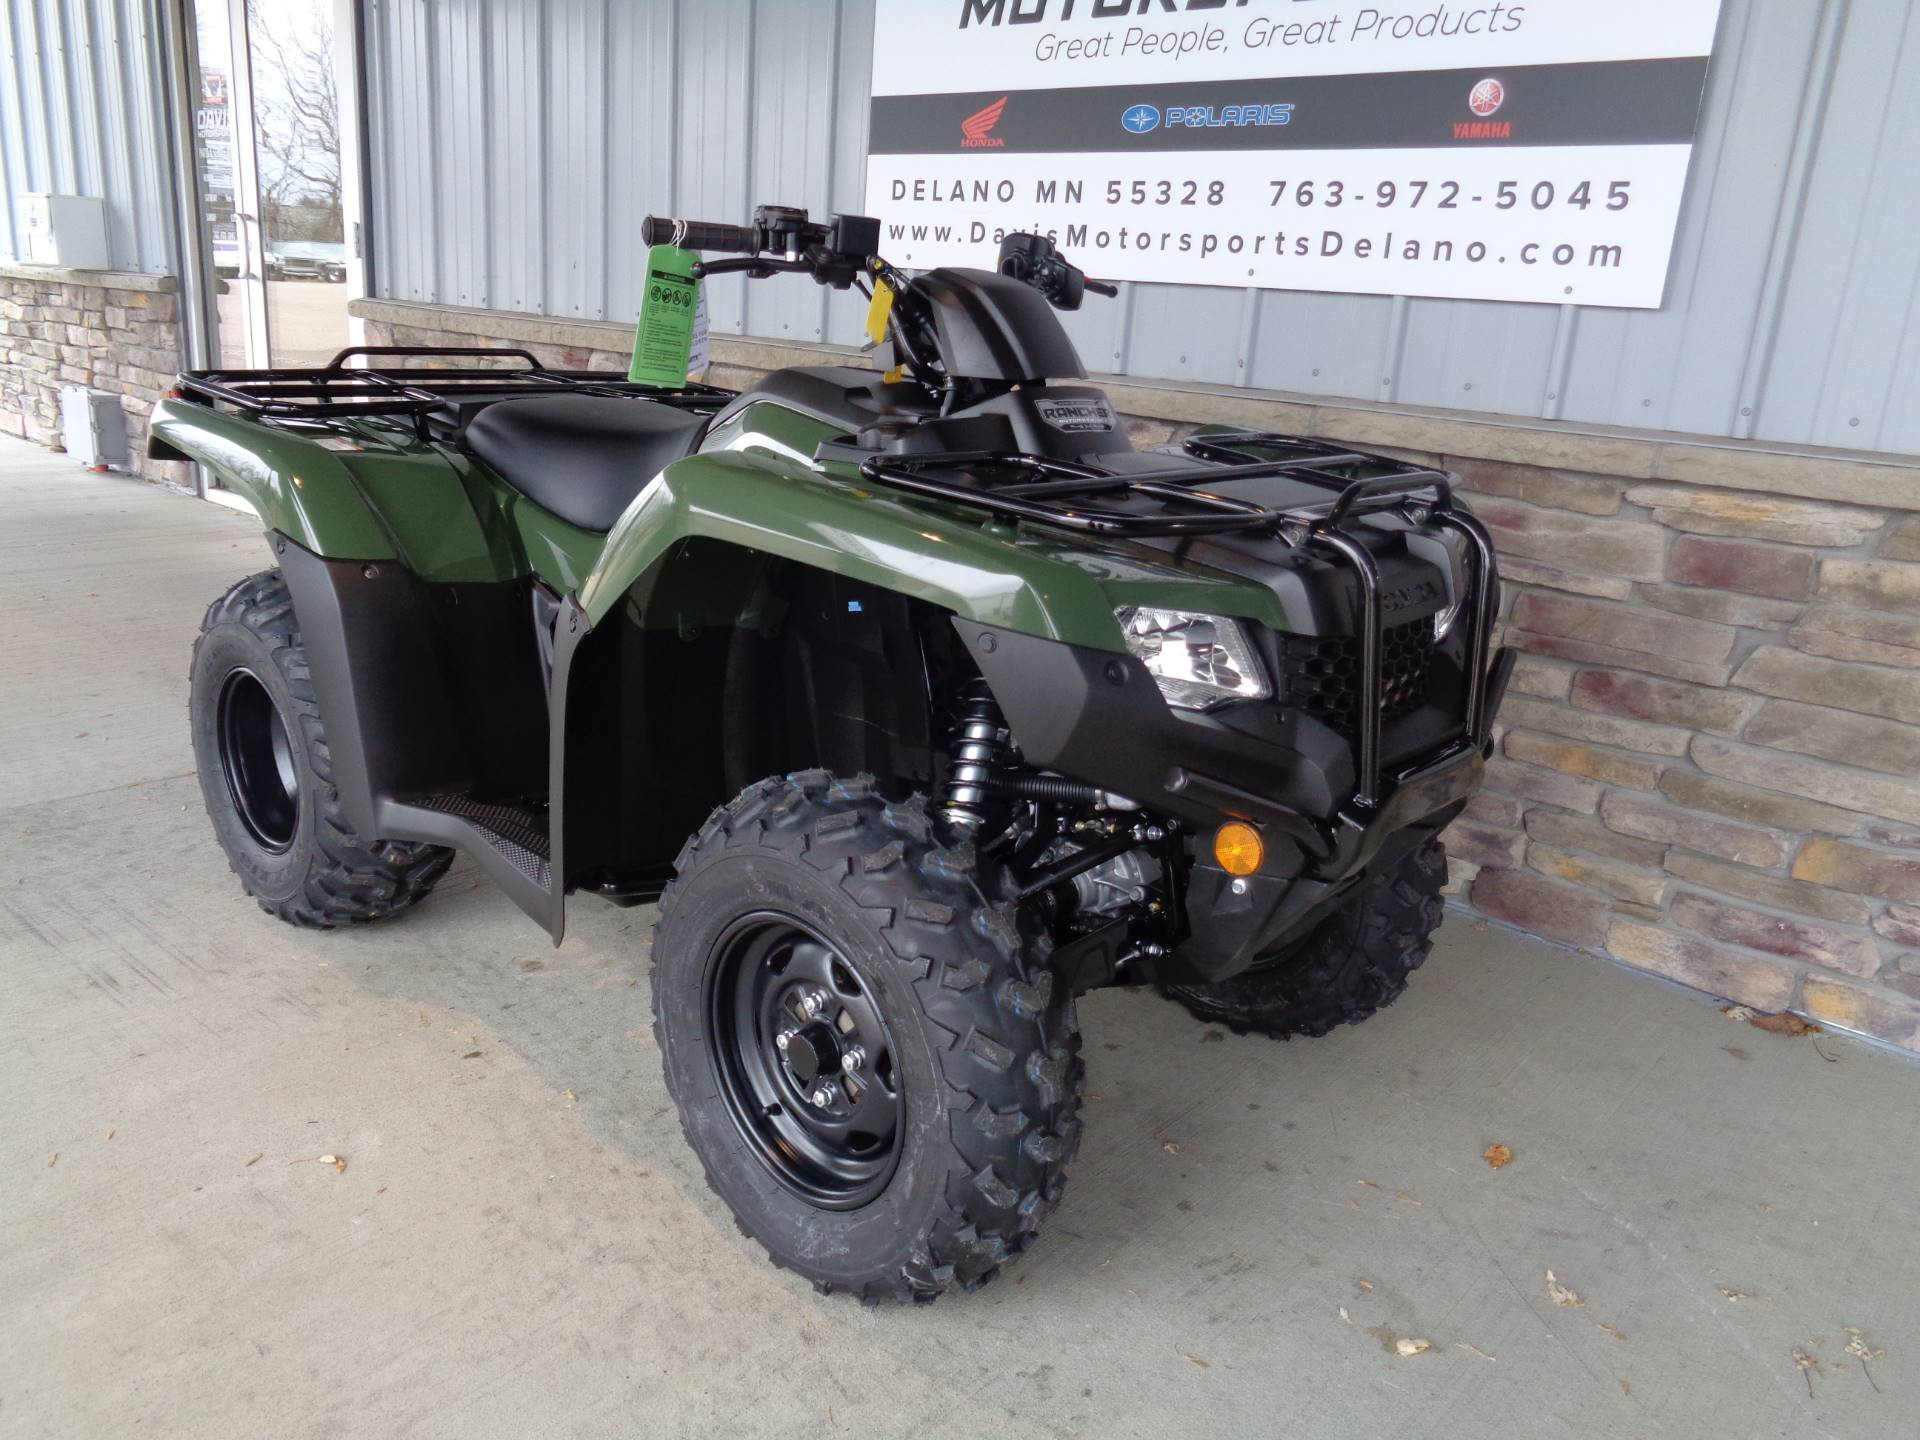 2019 Honda FourTrax Rancher 4x4 DCT EPS in Delano, Minnesota - Photo 3